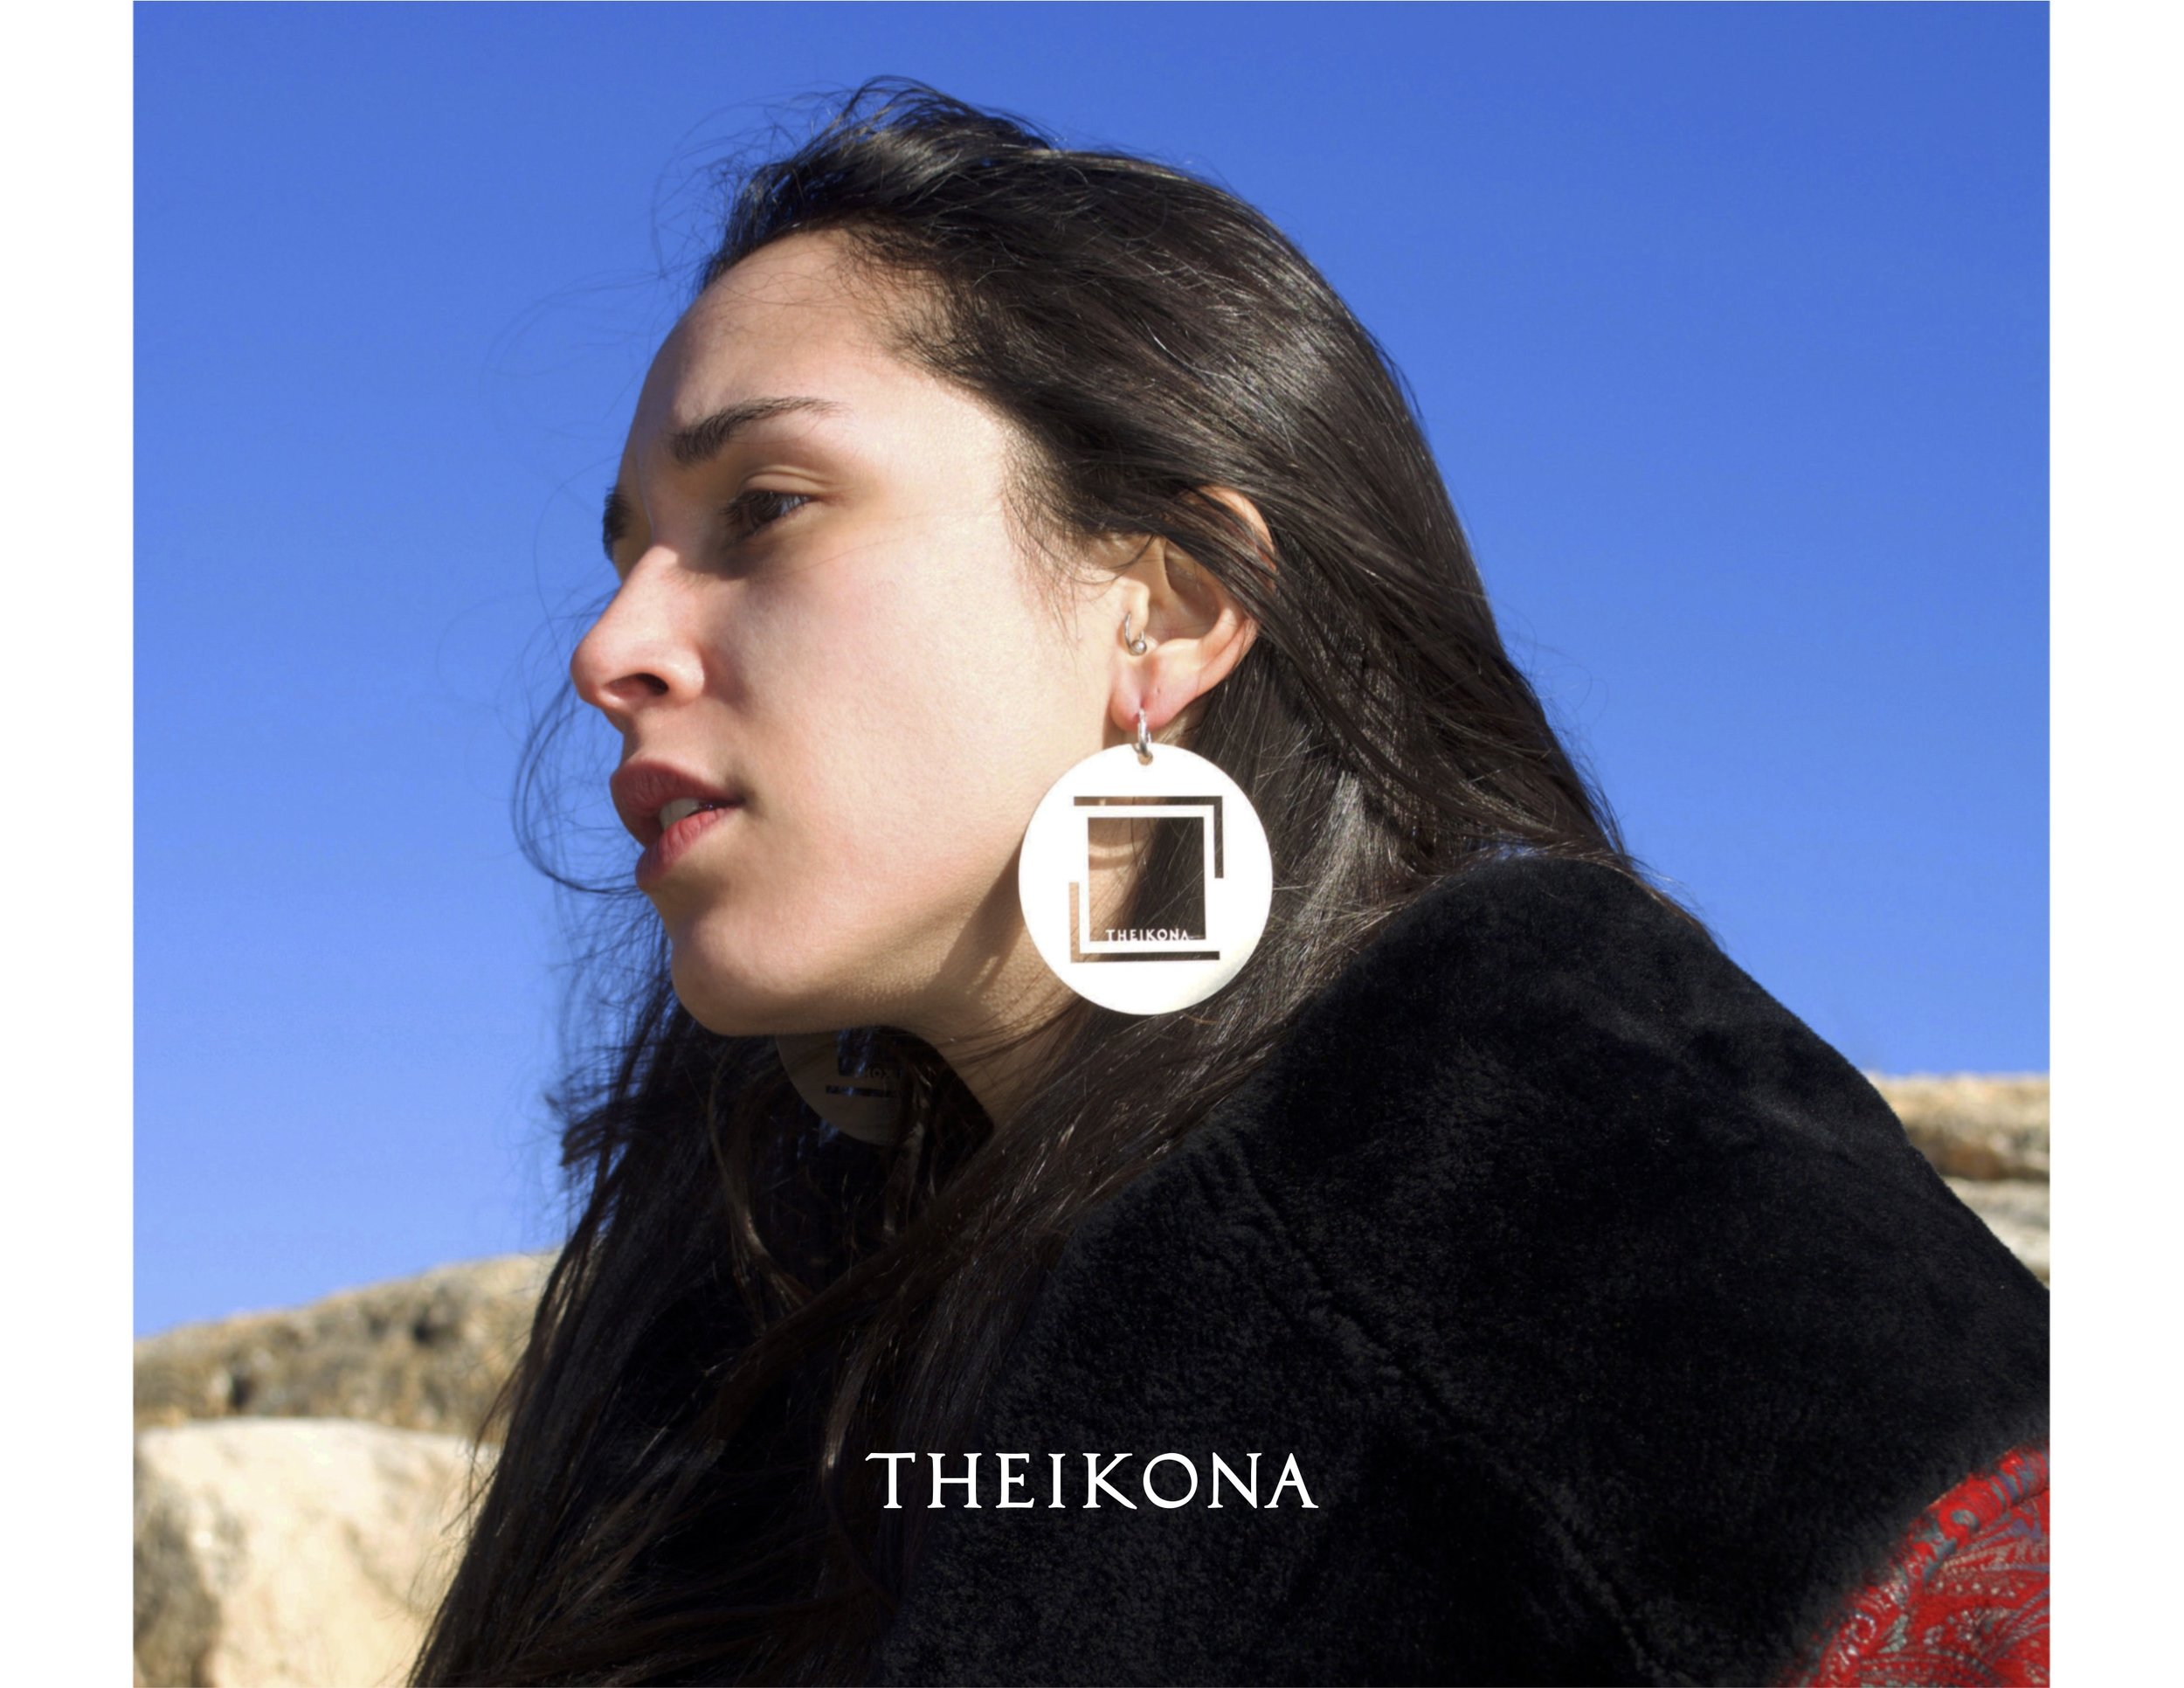 Theikona Lookbook 2017 10.jpg